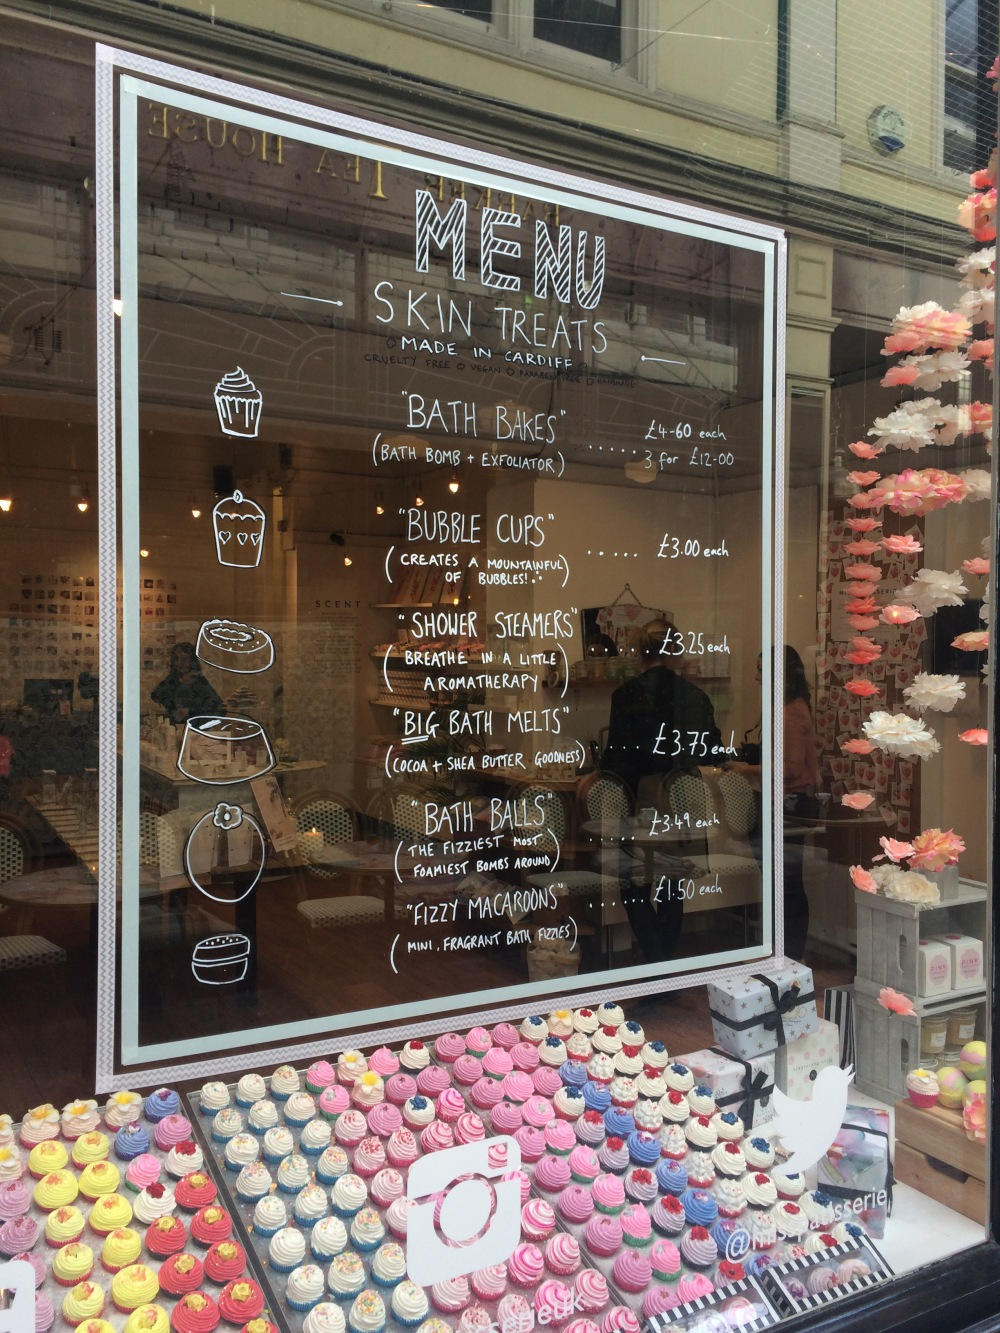 miss-patisserie-cardiff-review-natural-vegan-cf-skincare- front-window